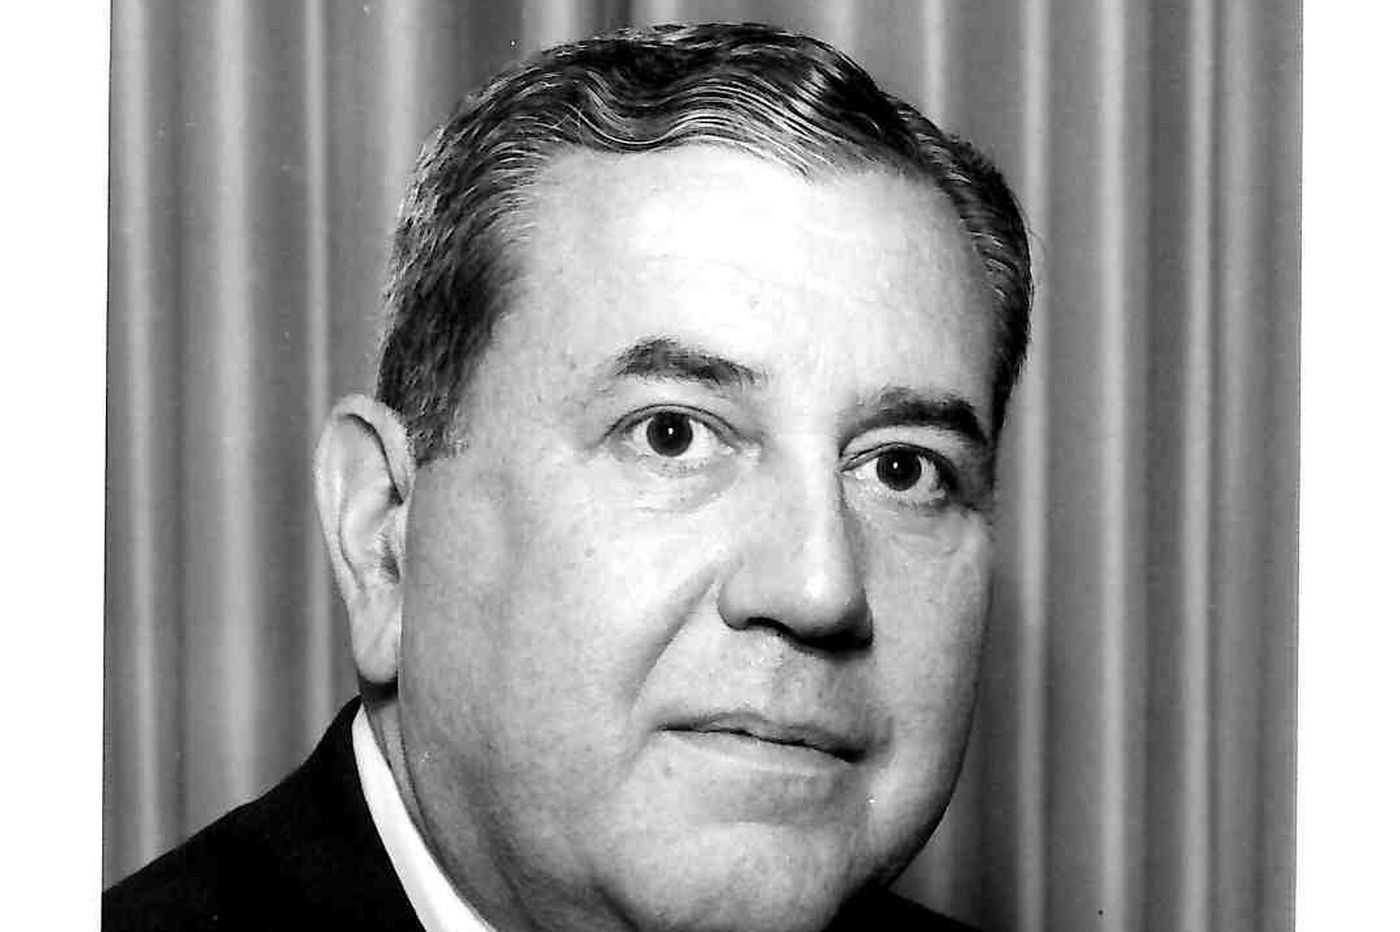 Edward L. Jones Jr., 82, former stockbroker who became chairman, CEO of AAA Mid-Atlantic